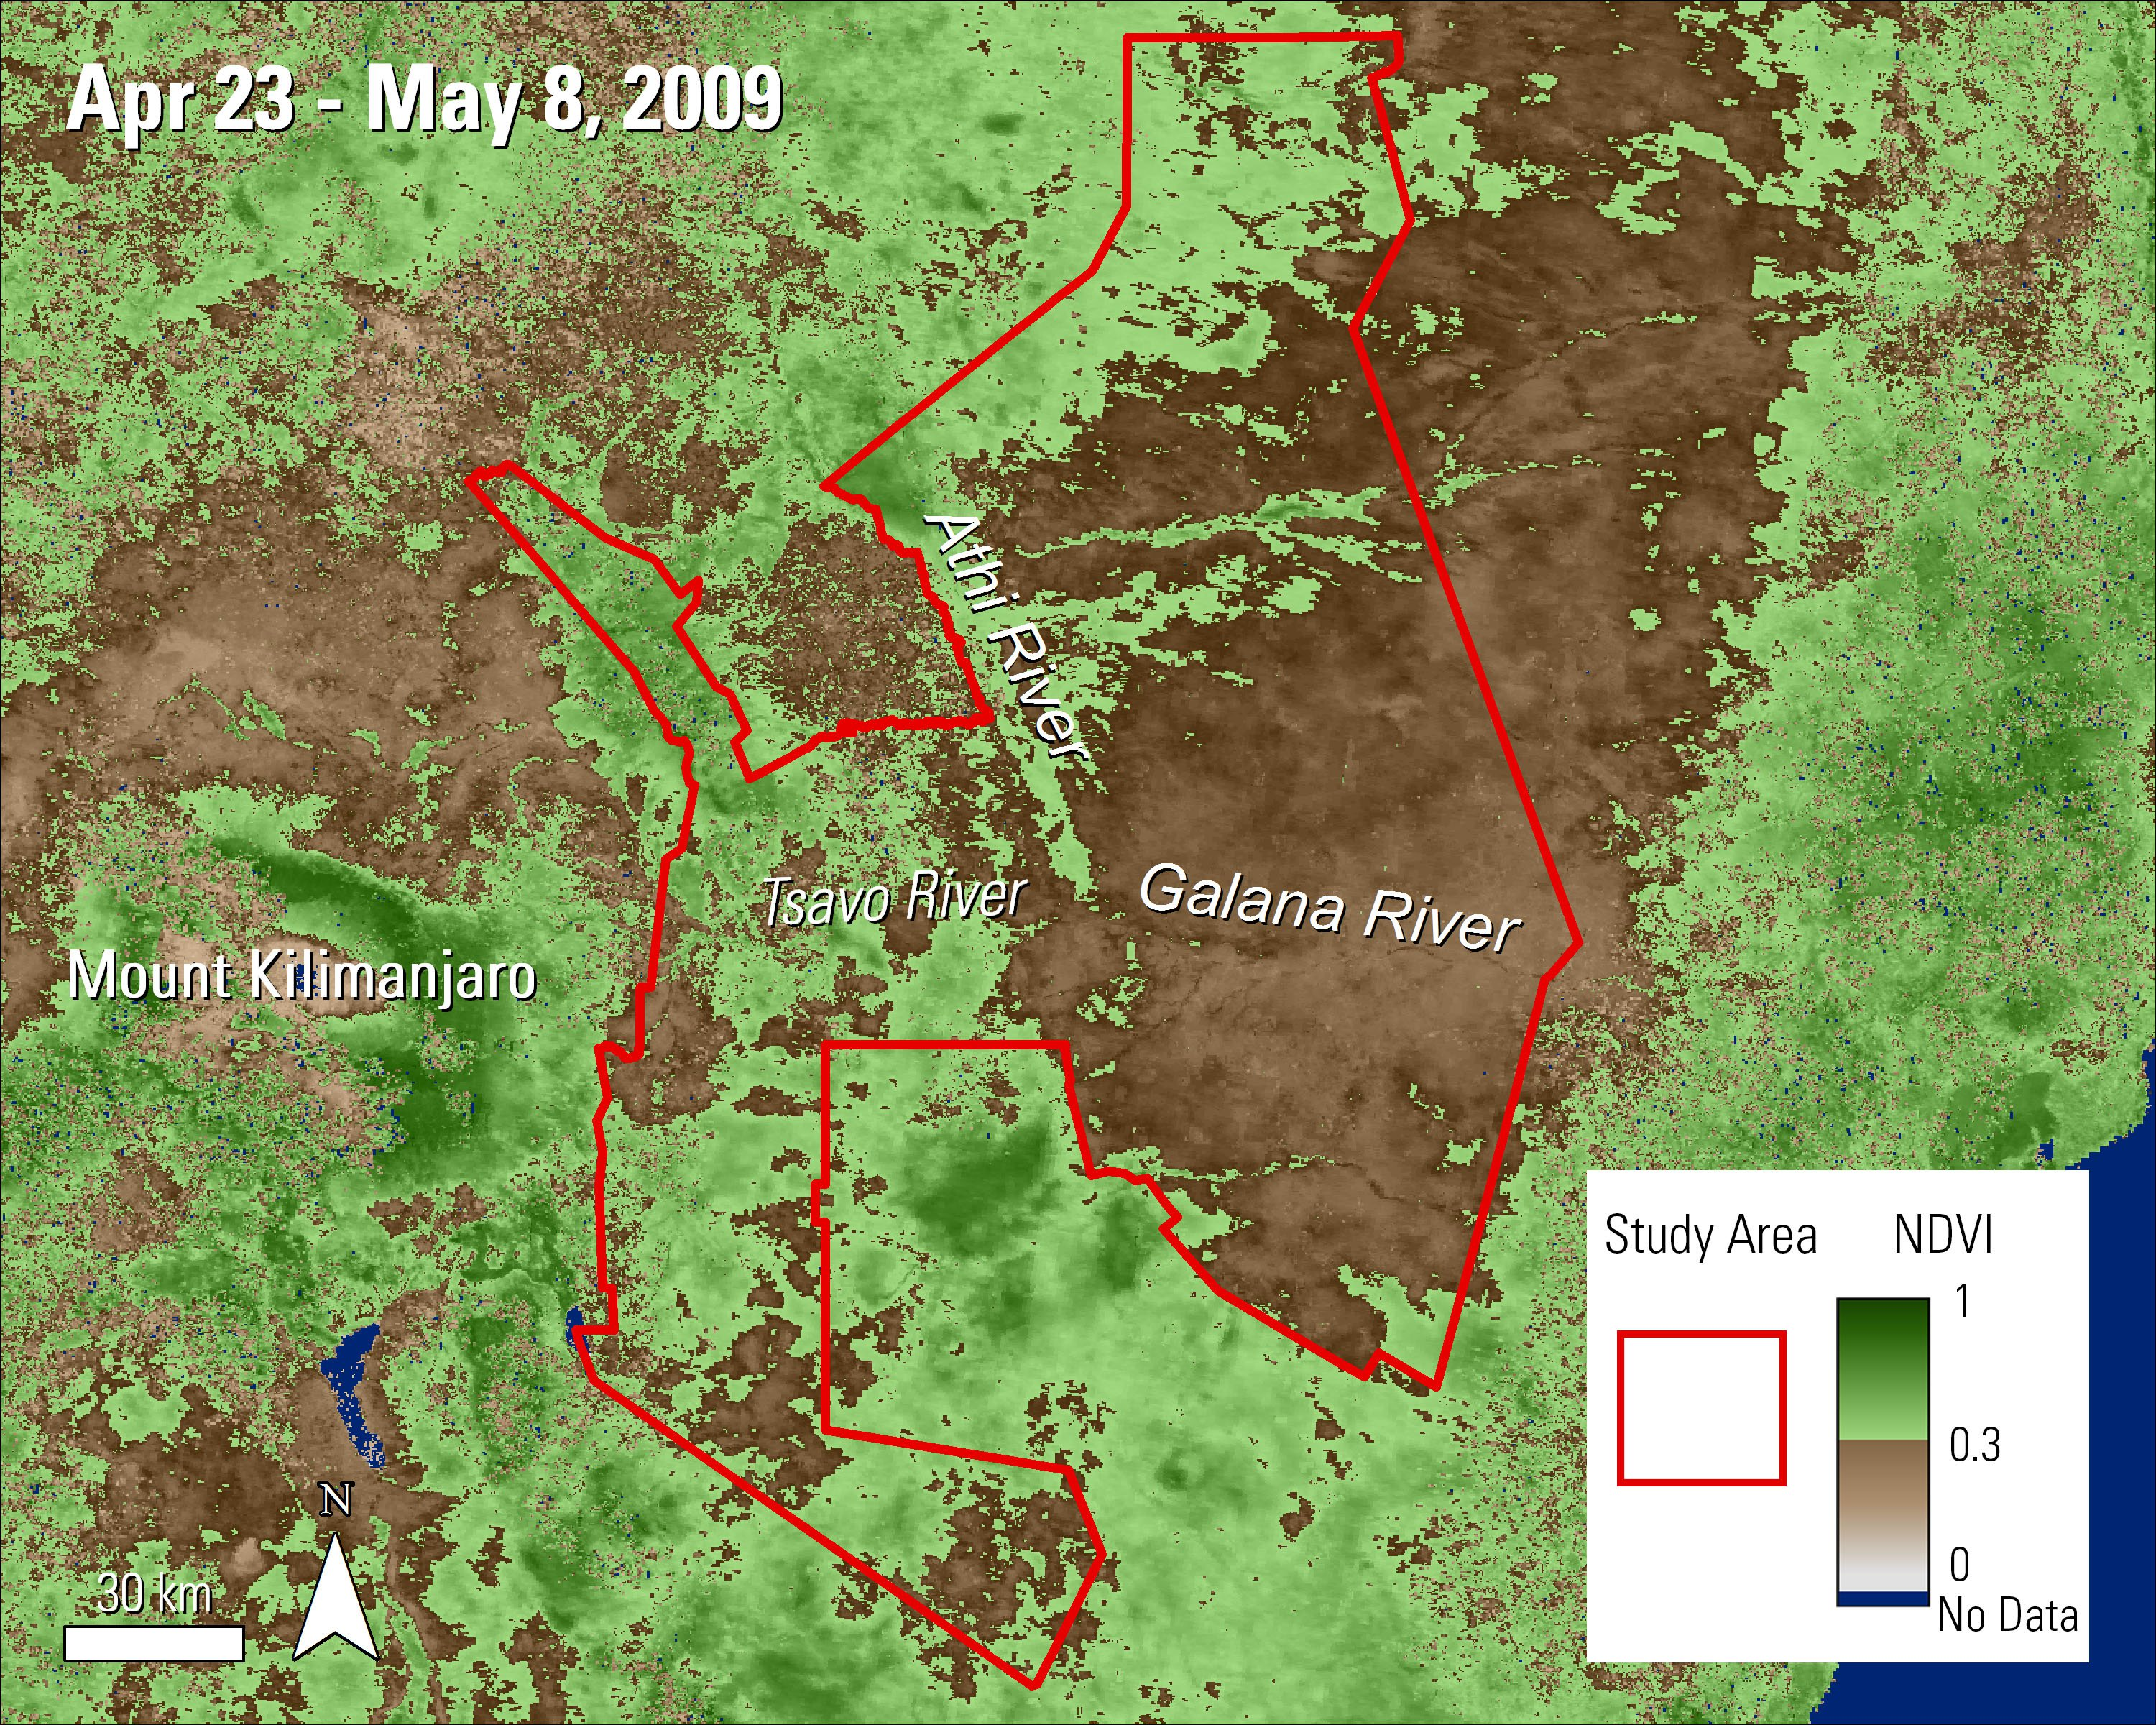 Terra MODIS NDVI data over the Tsavo Conservation Area in Kenya during April and May 2009.